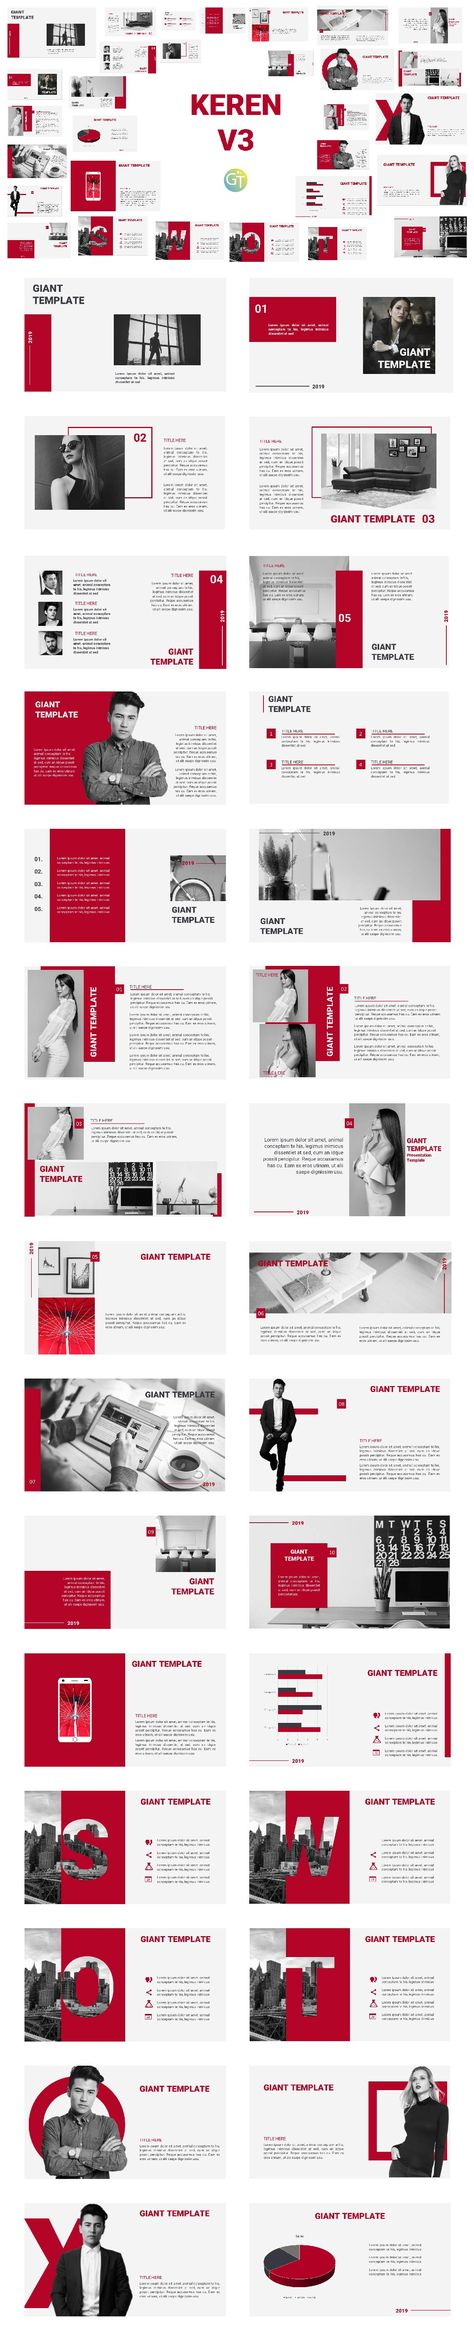 PTT Template Keren V3 31 slides free download